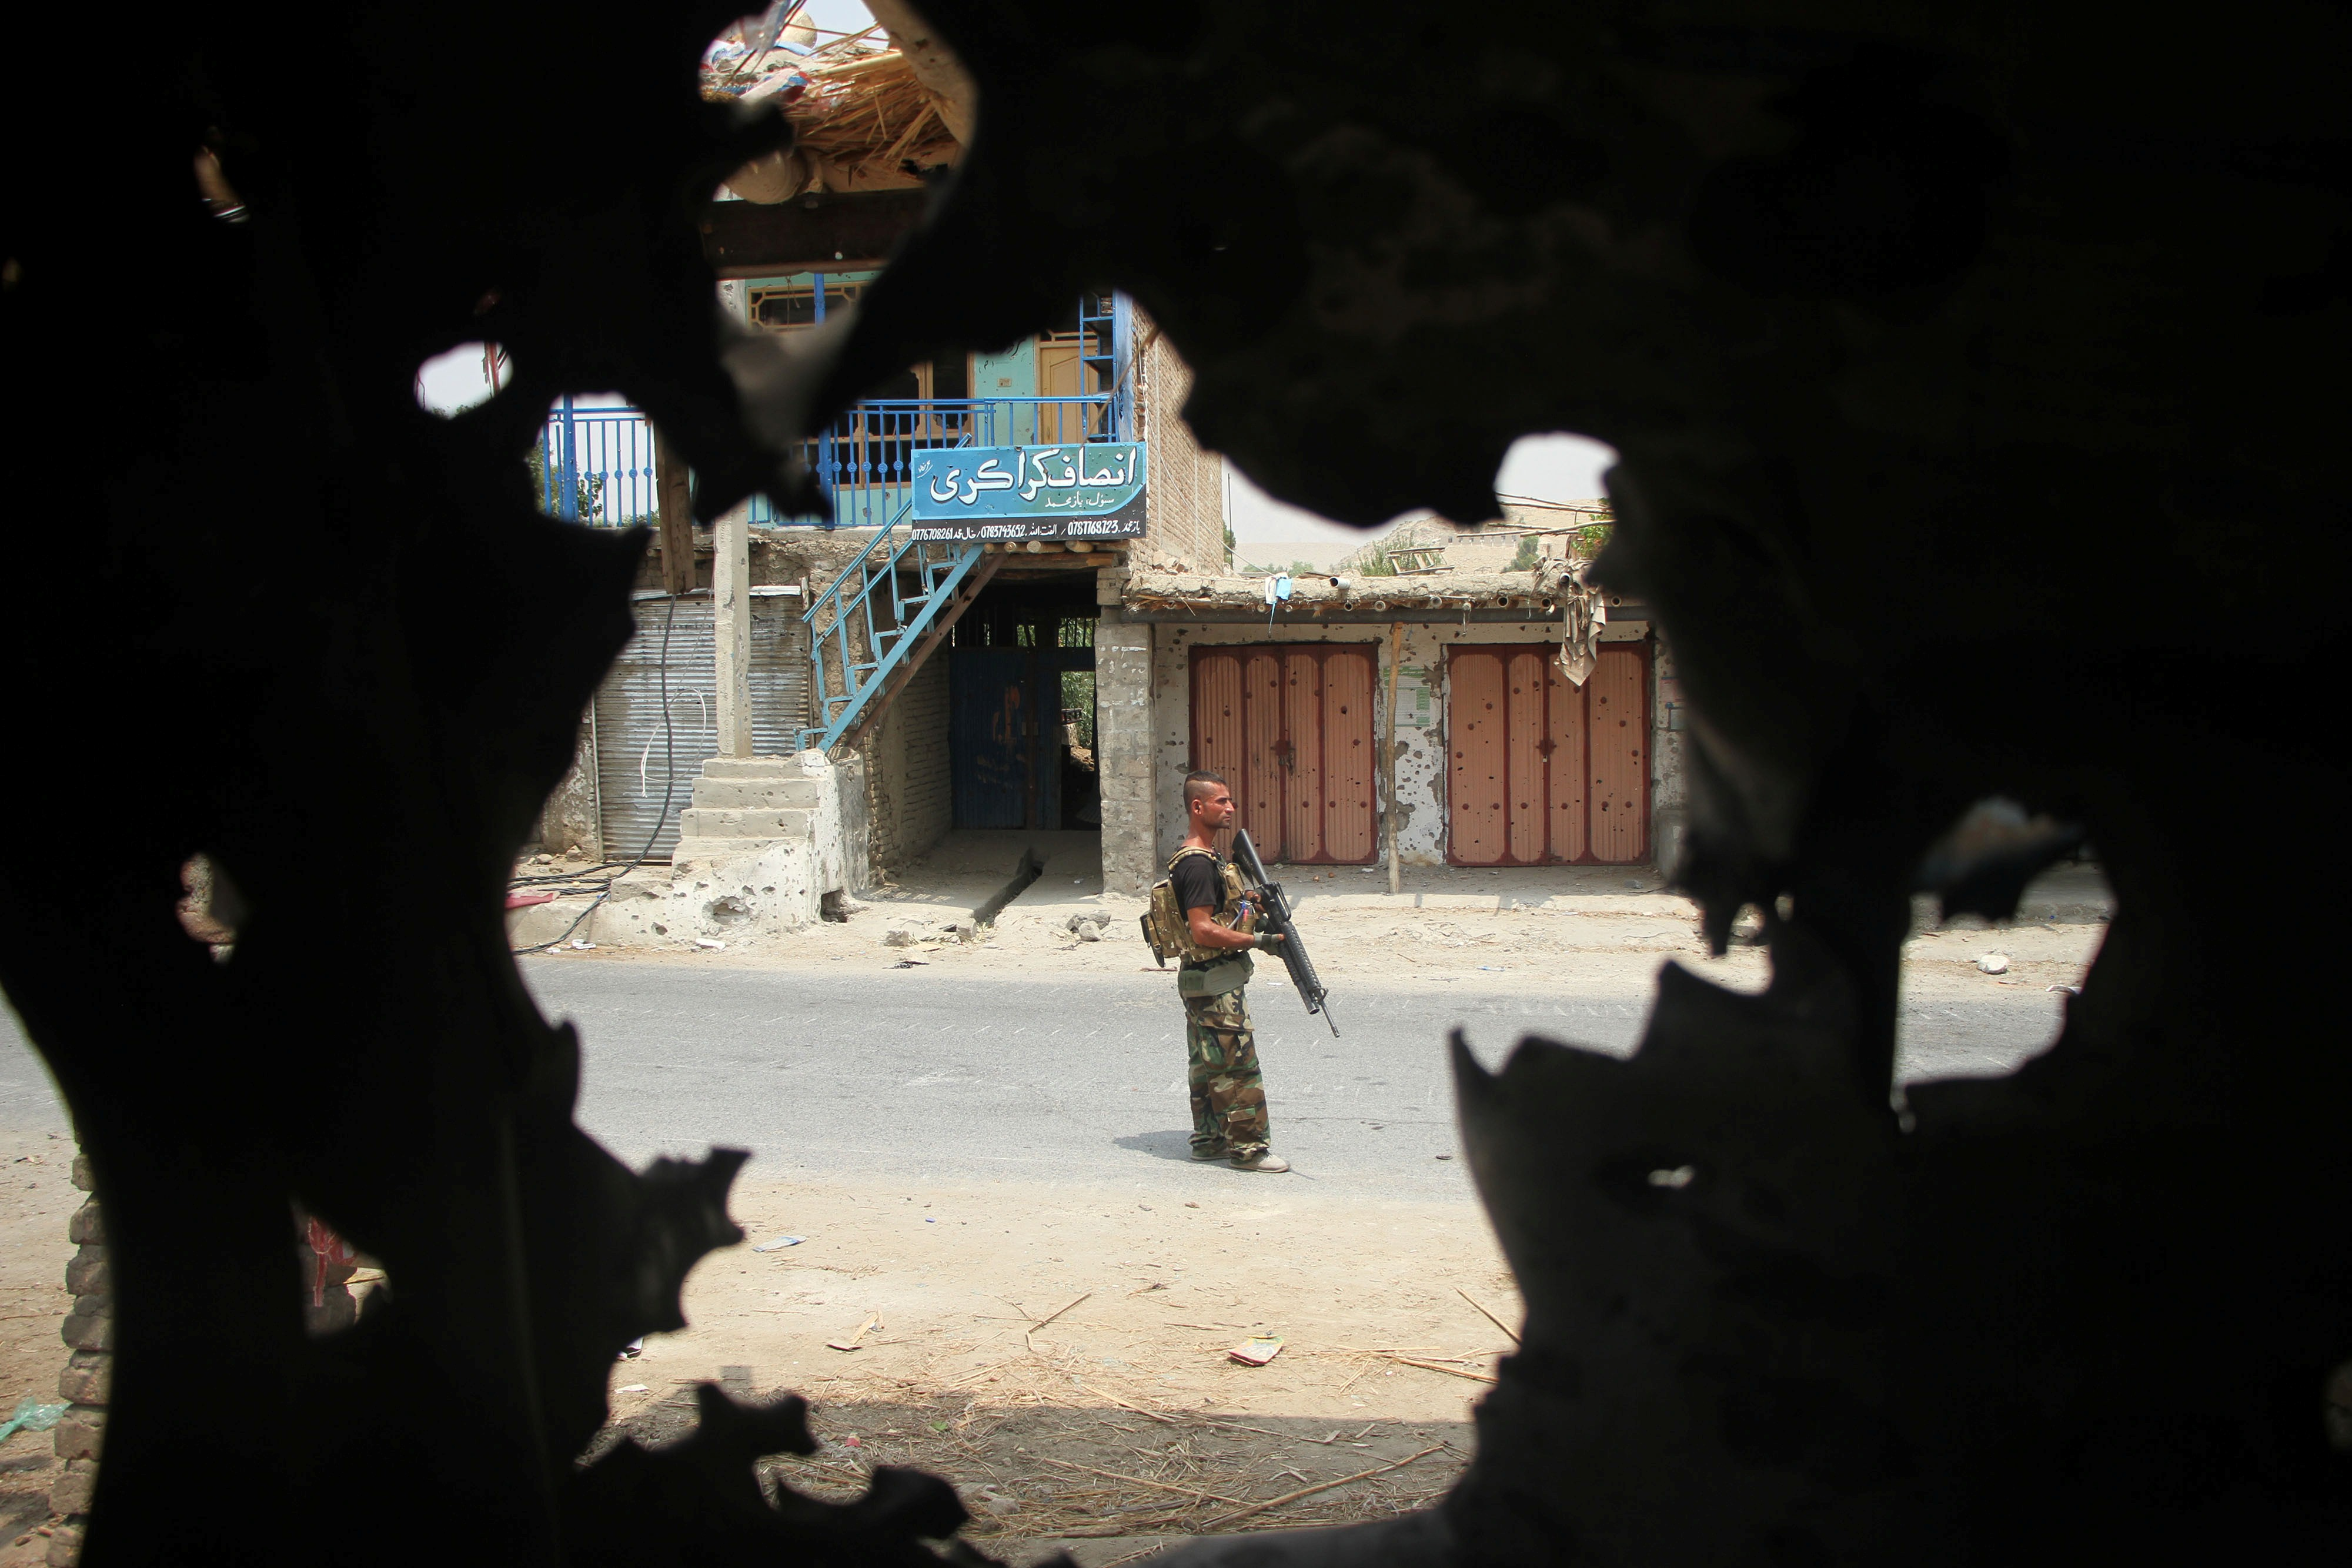 AFGHANISTAN-LAGHMAN-MILITARY OPERATION